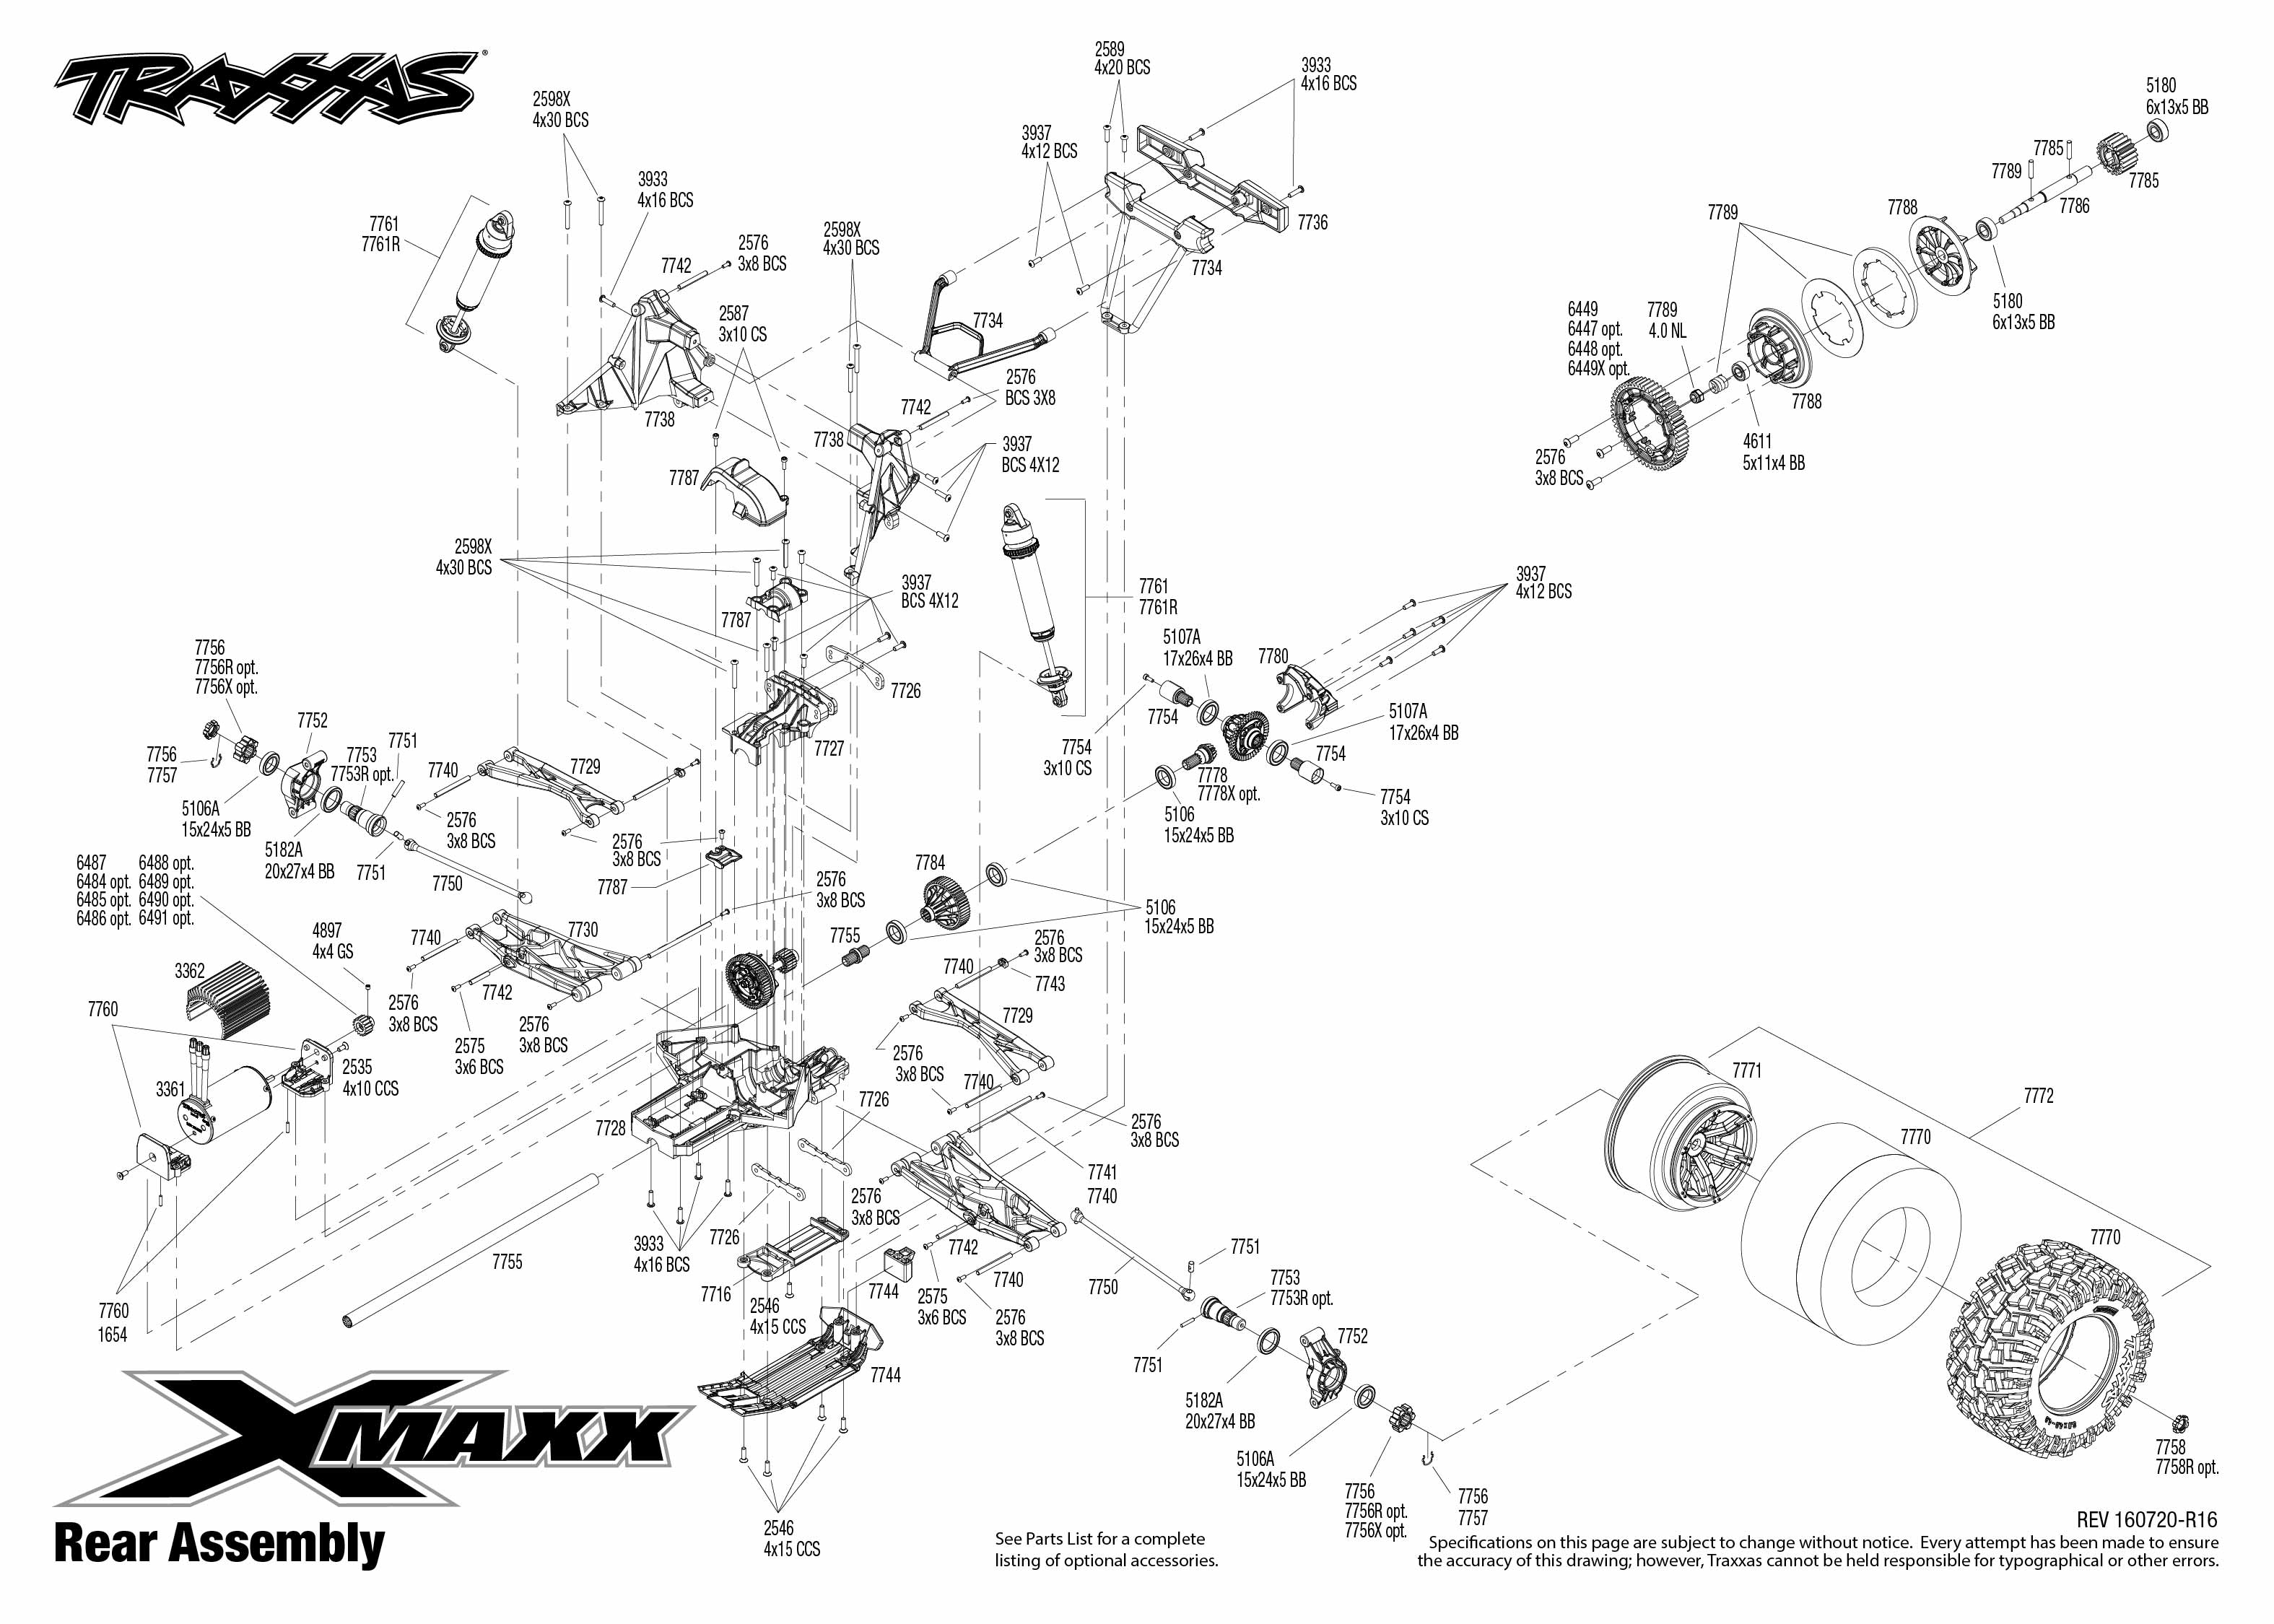 parts explosion diagram 2000 gmc sonoma stereo wiring traxxas list slash 4x4